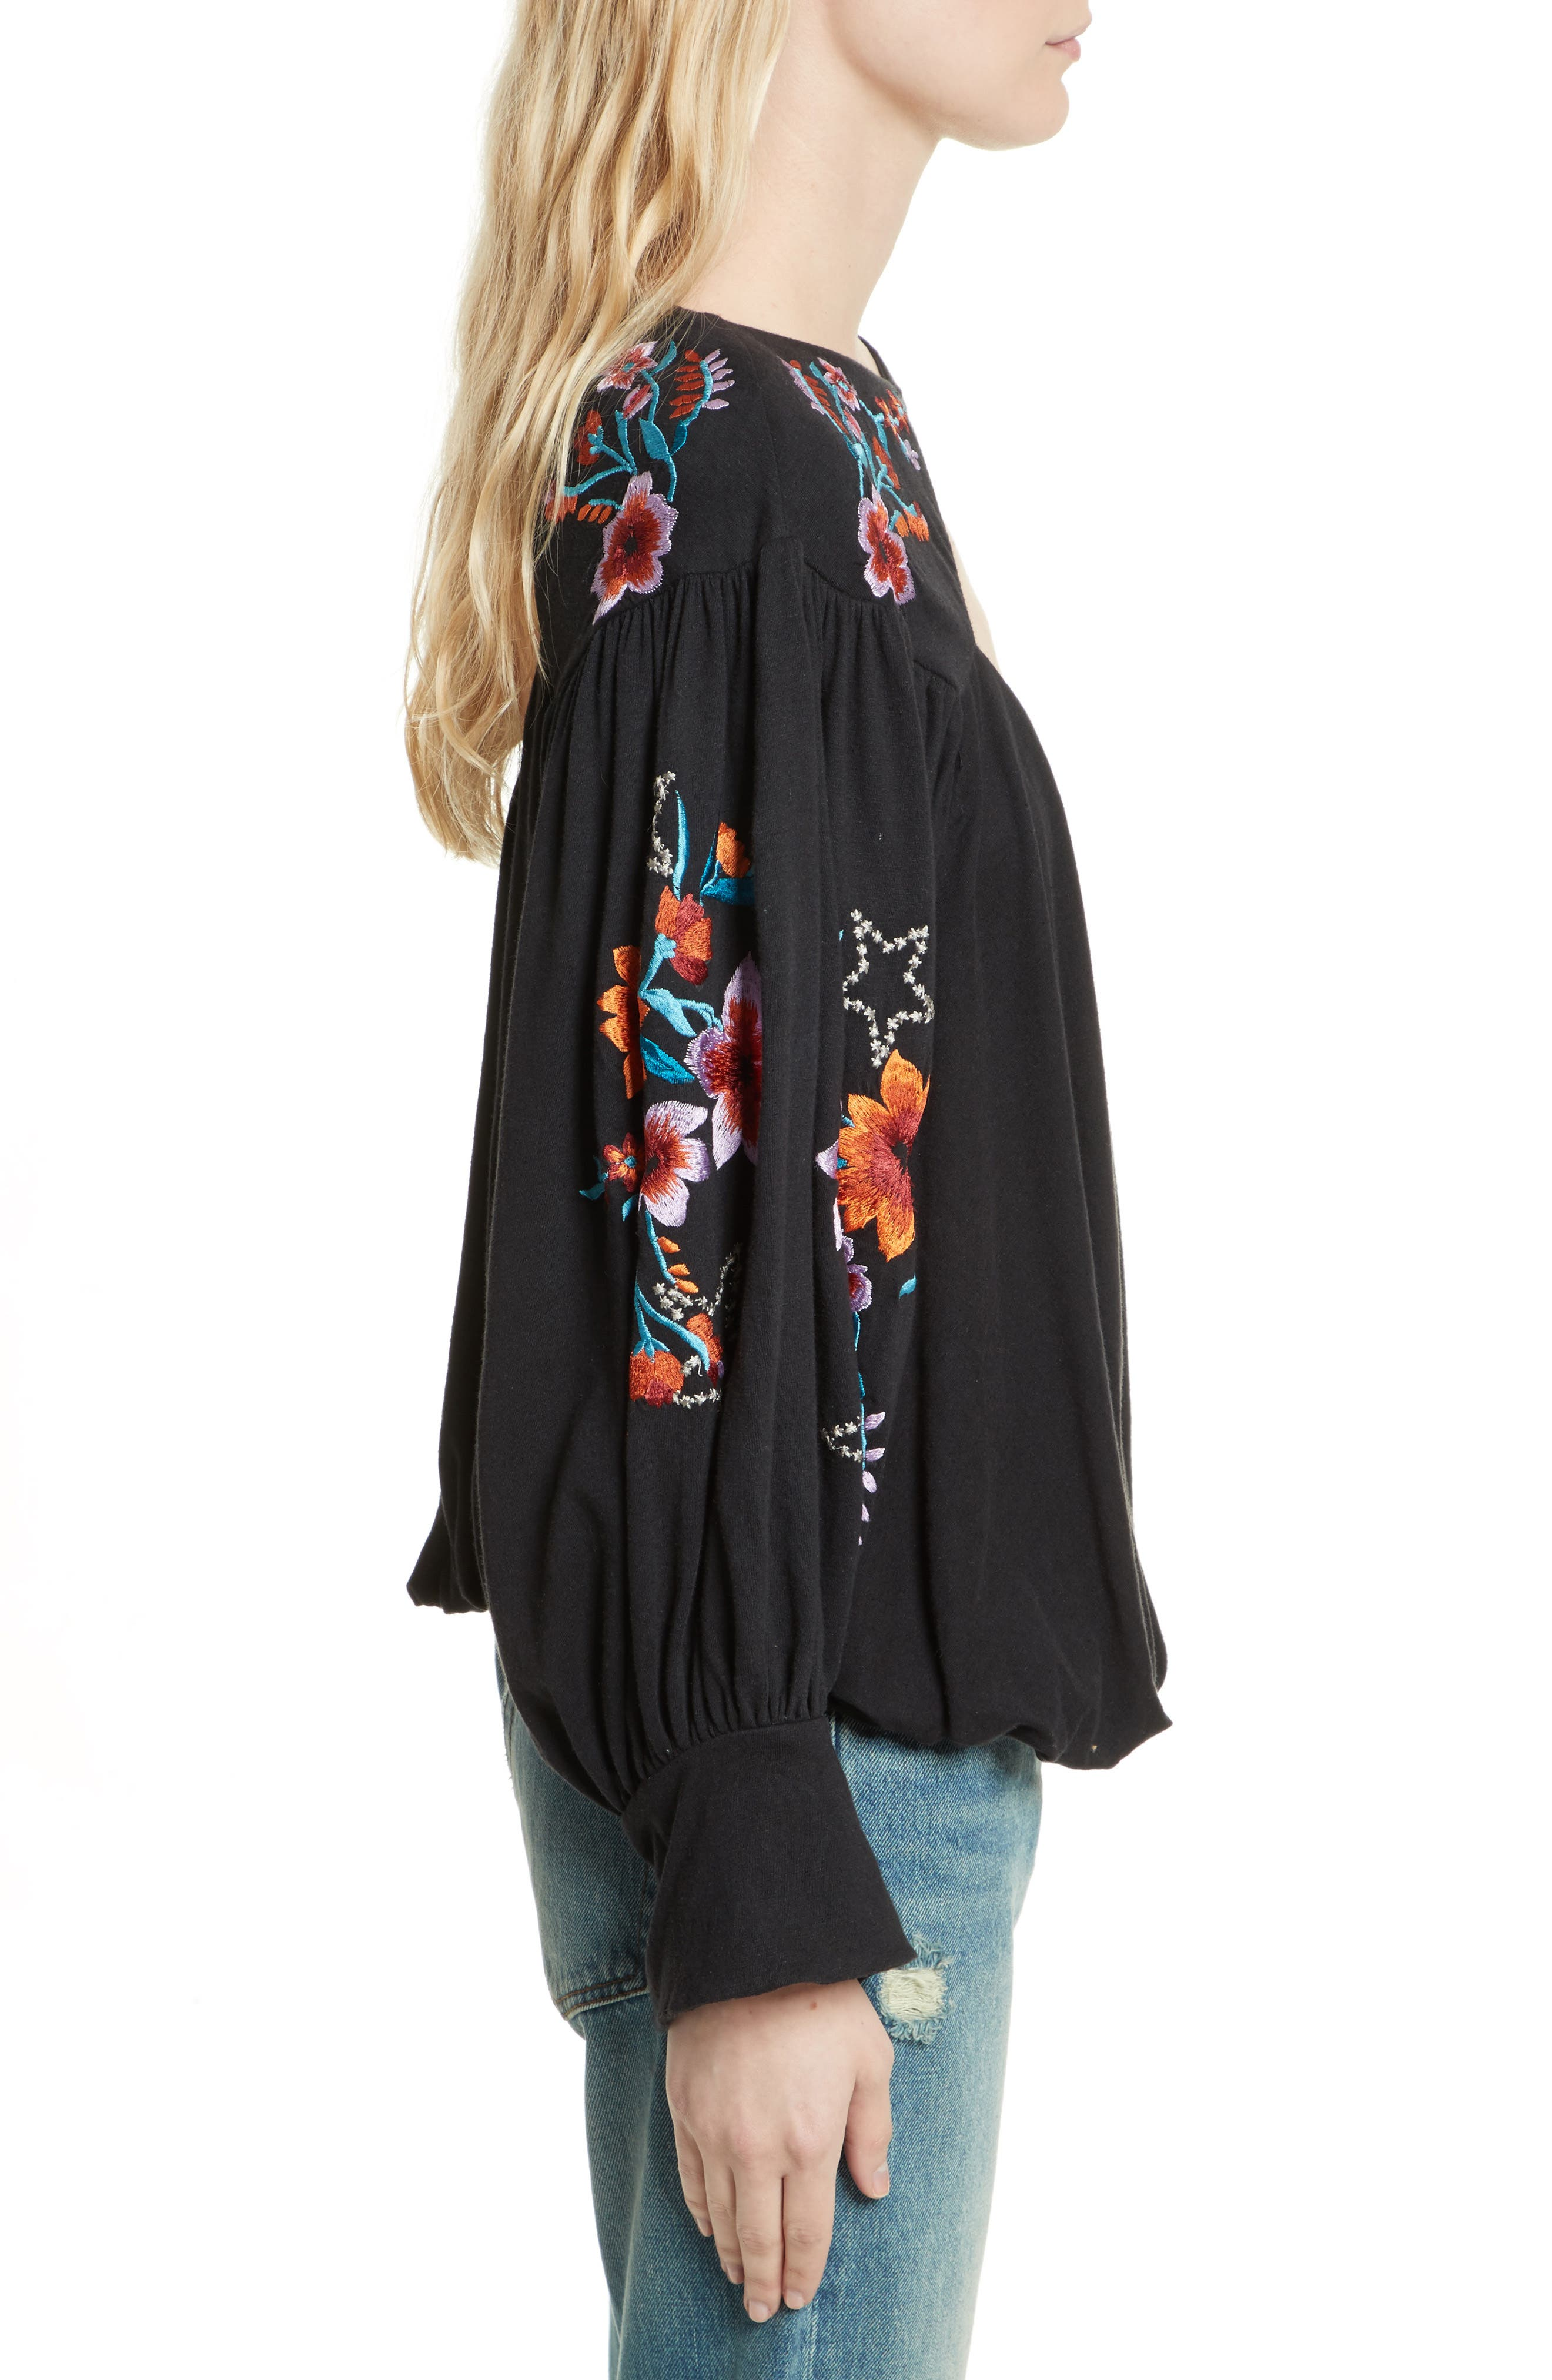 FREE PEOPLE,                             Lita Embroidered Bell Sleeve Top,                             Alternate thumbnail 3, color,                             001